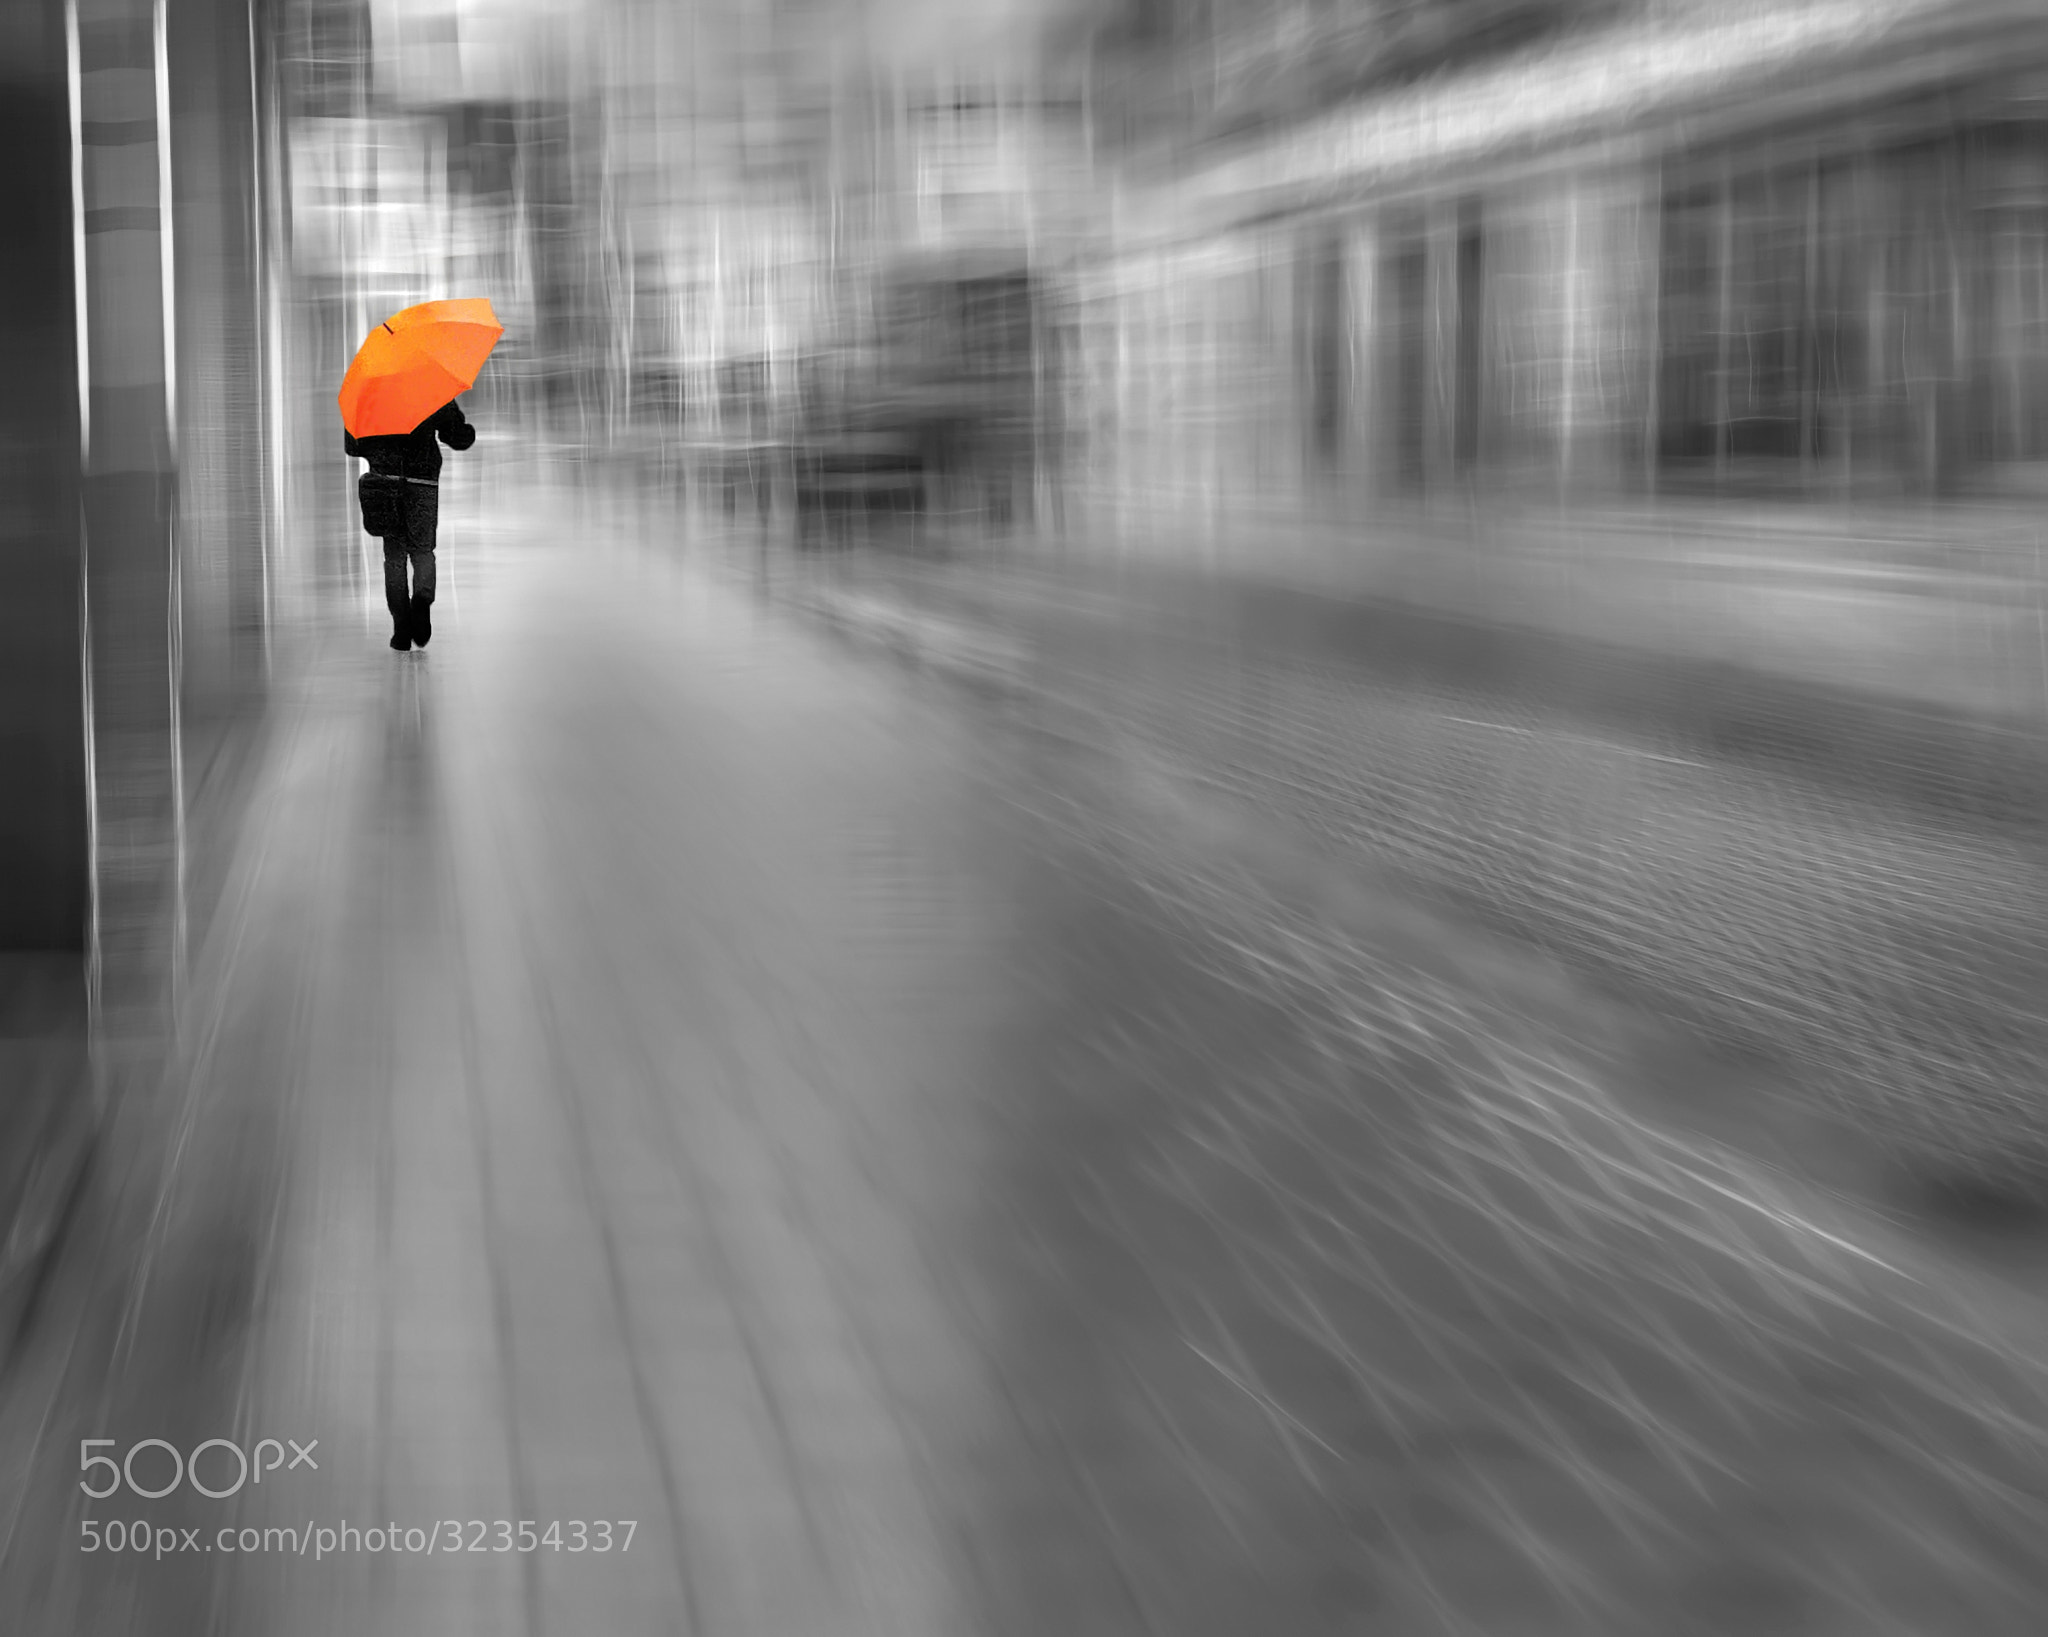 Photograph Orange Umbrella by Josep Sumalla i Jordana on 500px